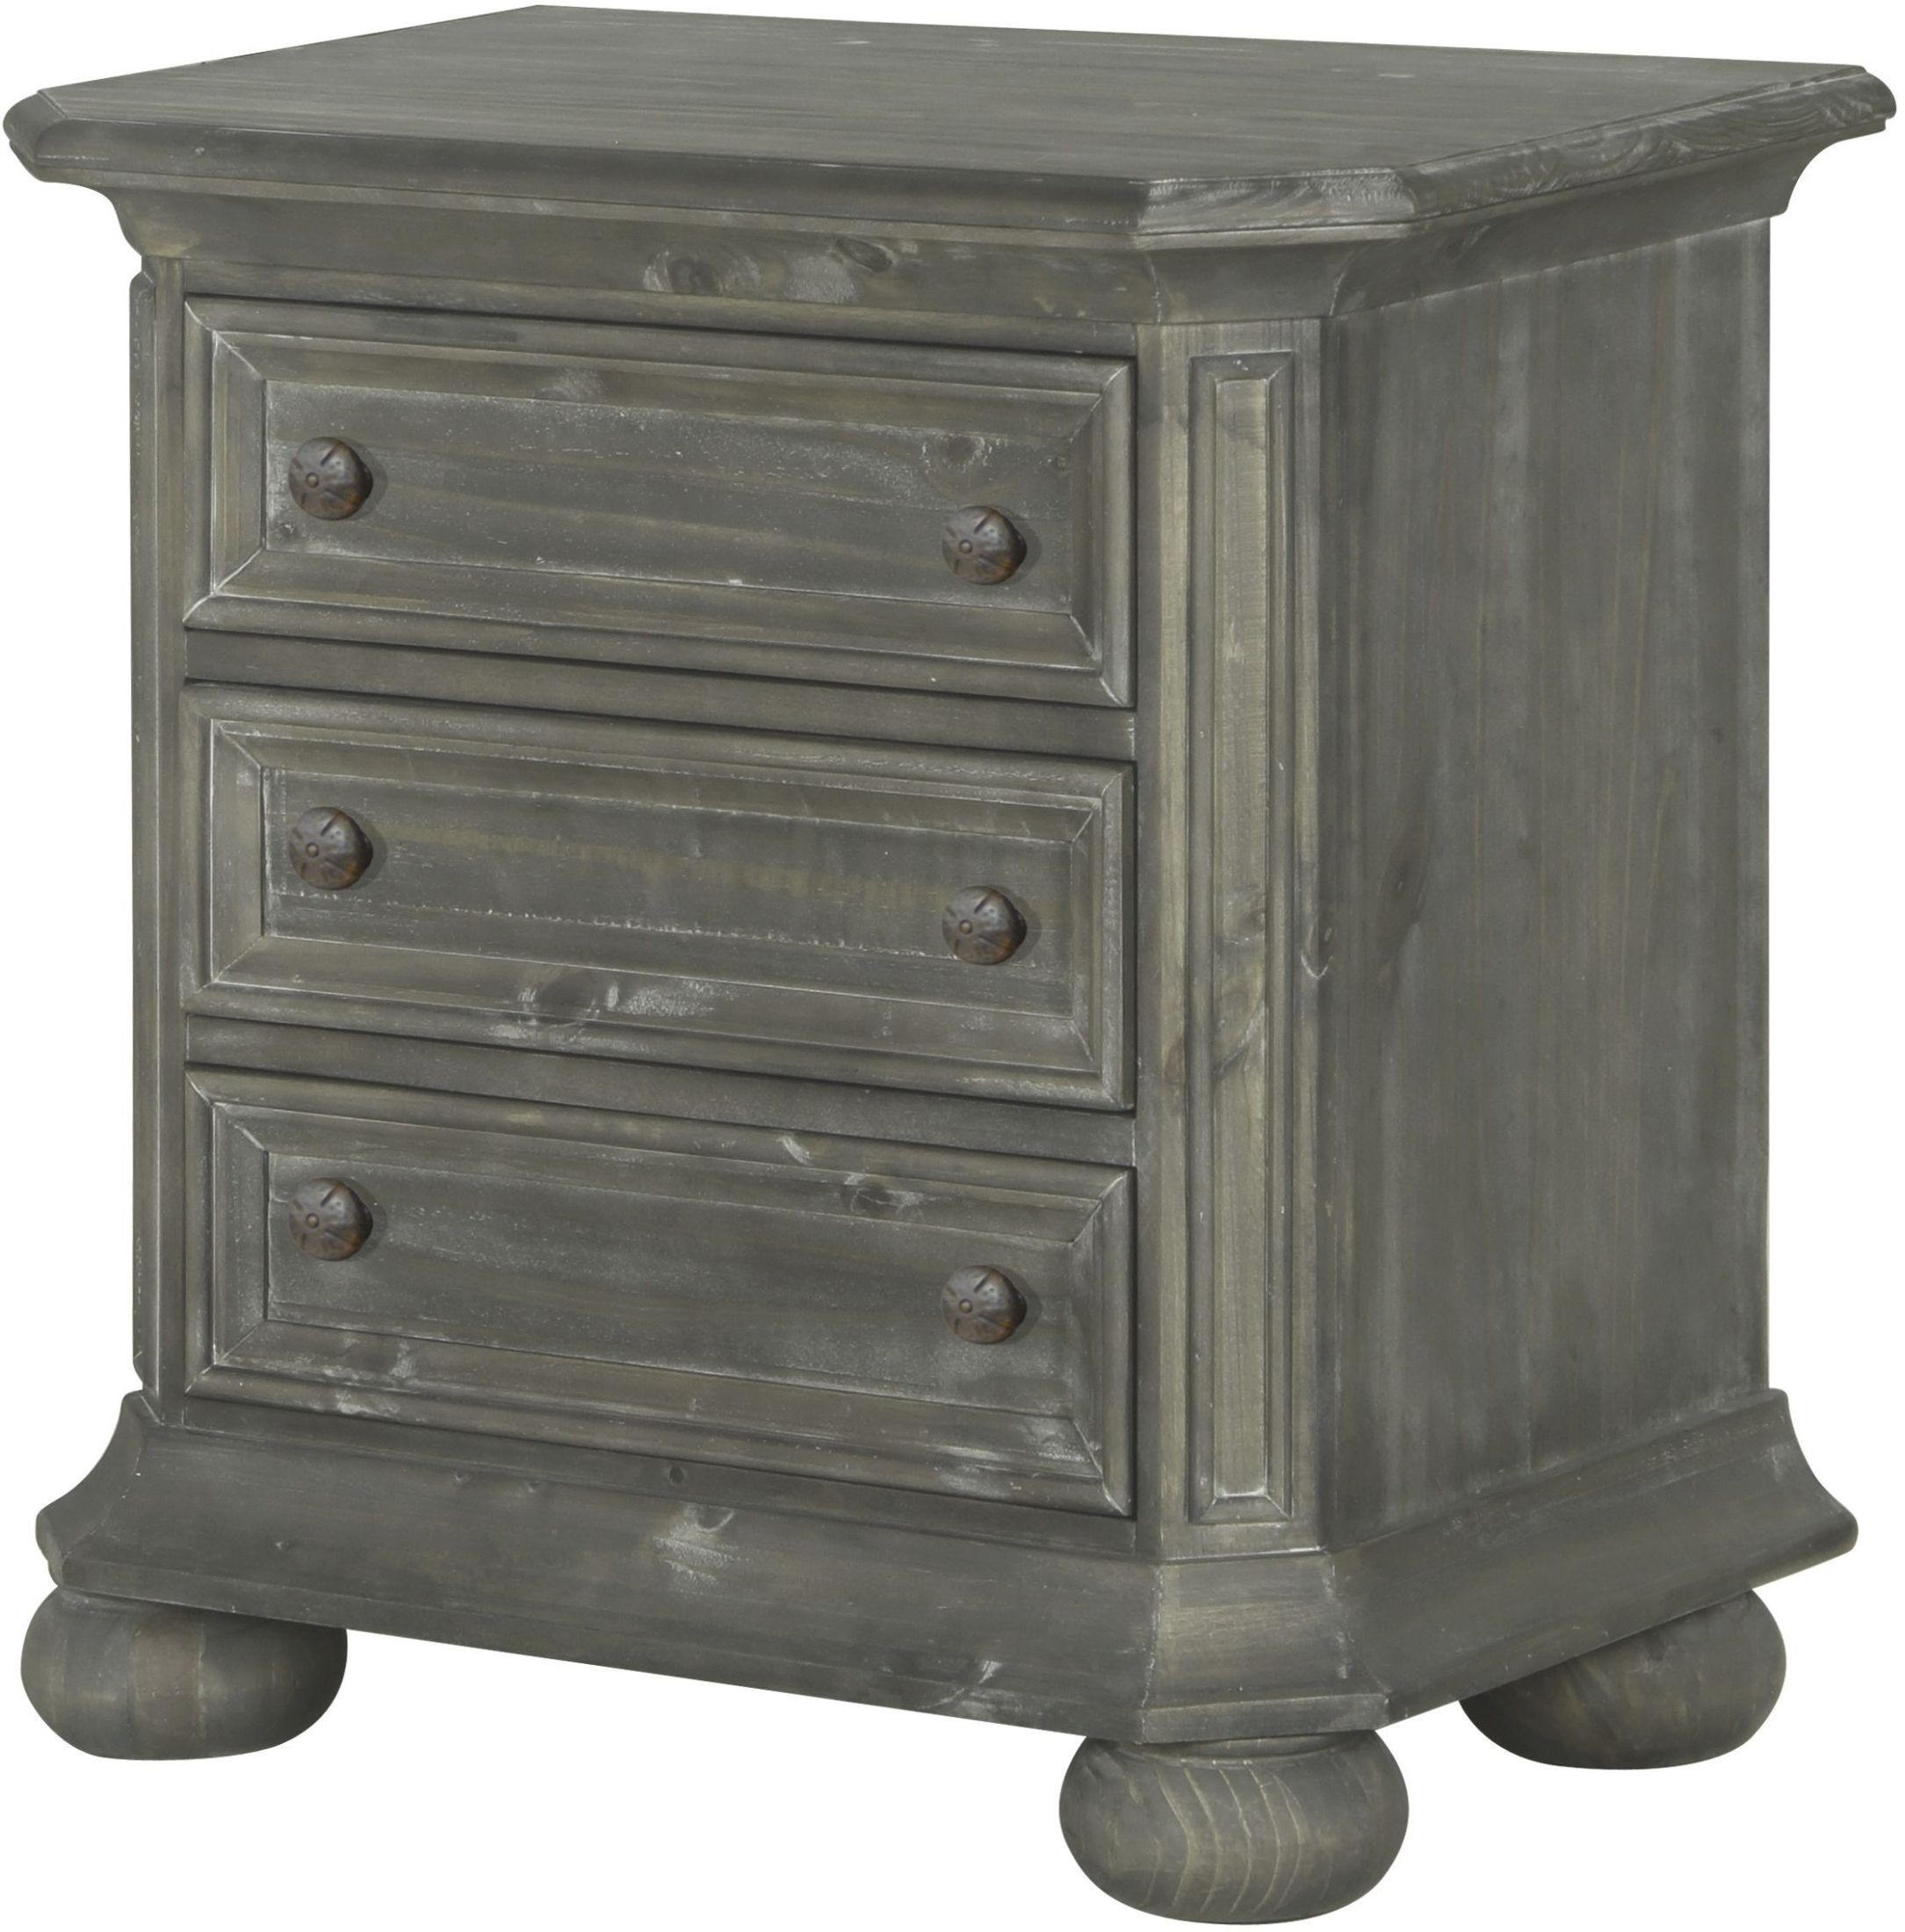 Cheswick Washed Linen Grey Nightstand from Magnussen Home